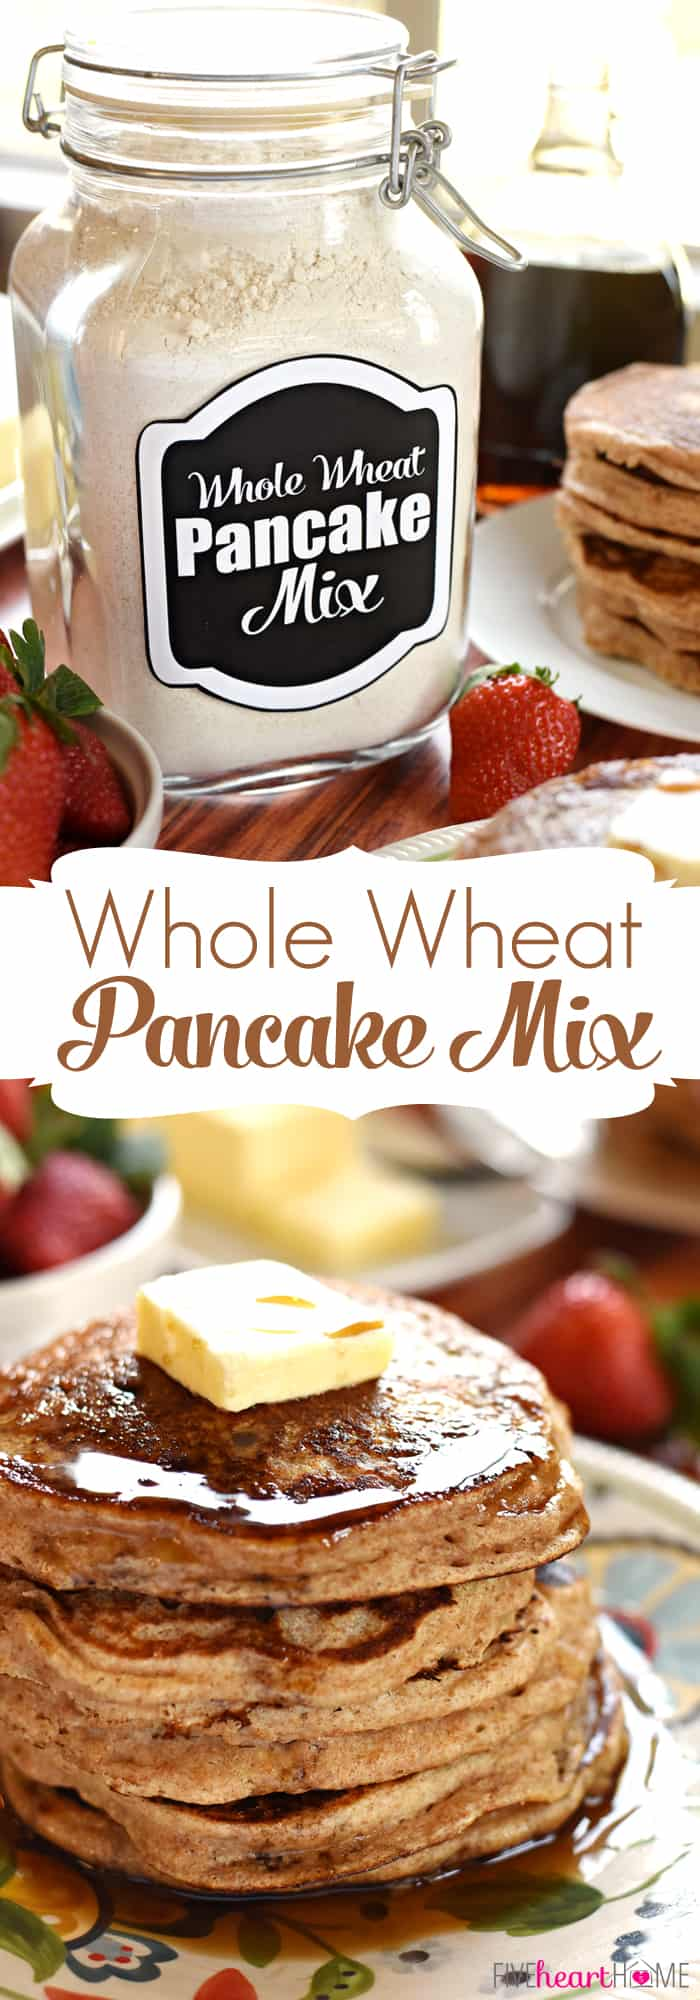 Homemade whole wheat pancake mix whole wheat pancake mix keep a jar of this all natural homemade mix in ccuart Choice Image